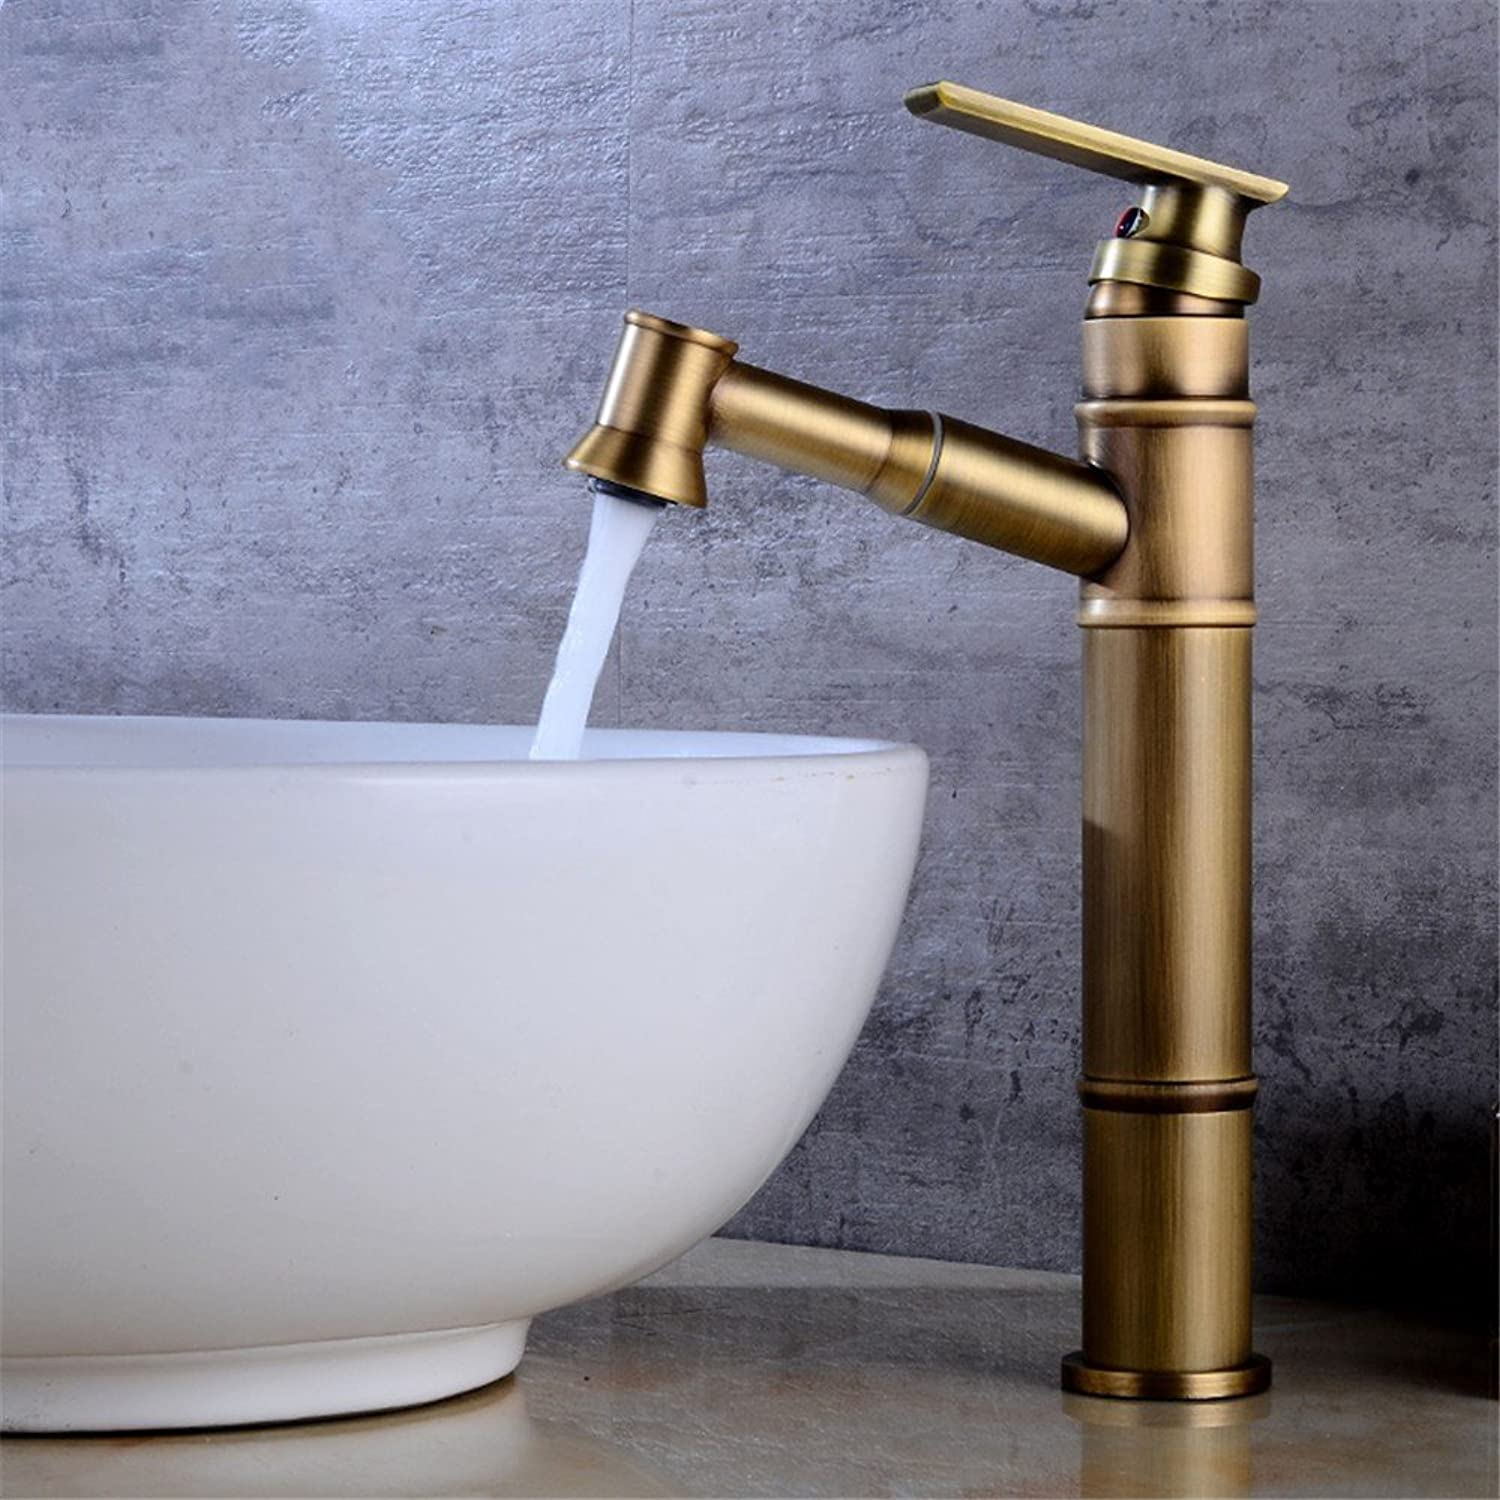 Decorry European Style Faucet Faucet Antique Copper Hot and Cold Shampoo Head Basin Wash Hand Bathroom Bathroom Cabinet with Telescopic Faucet Antique Podium